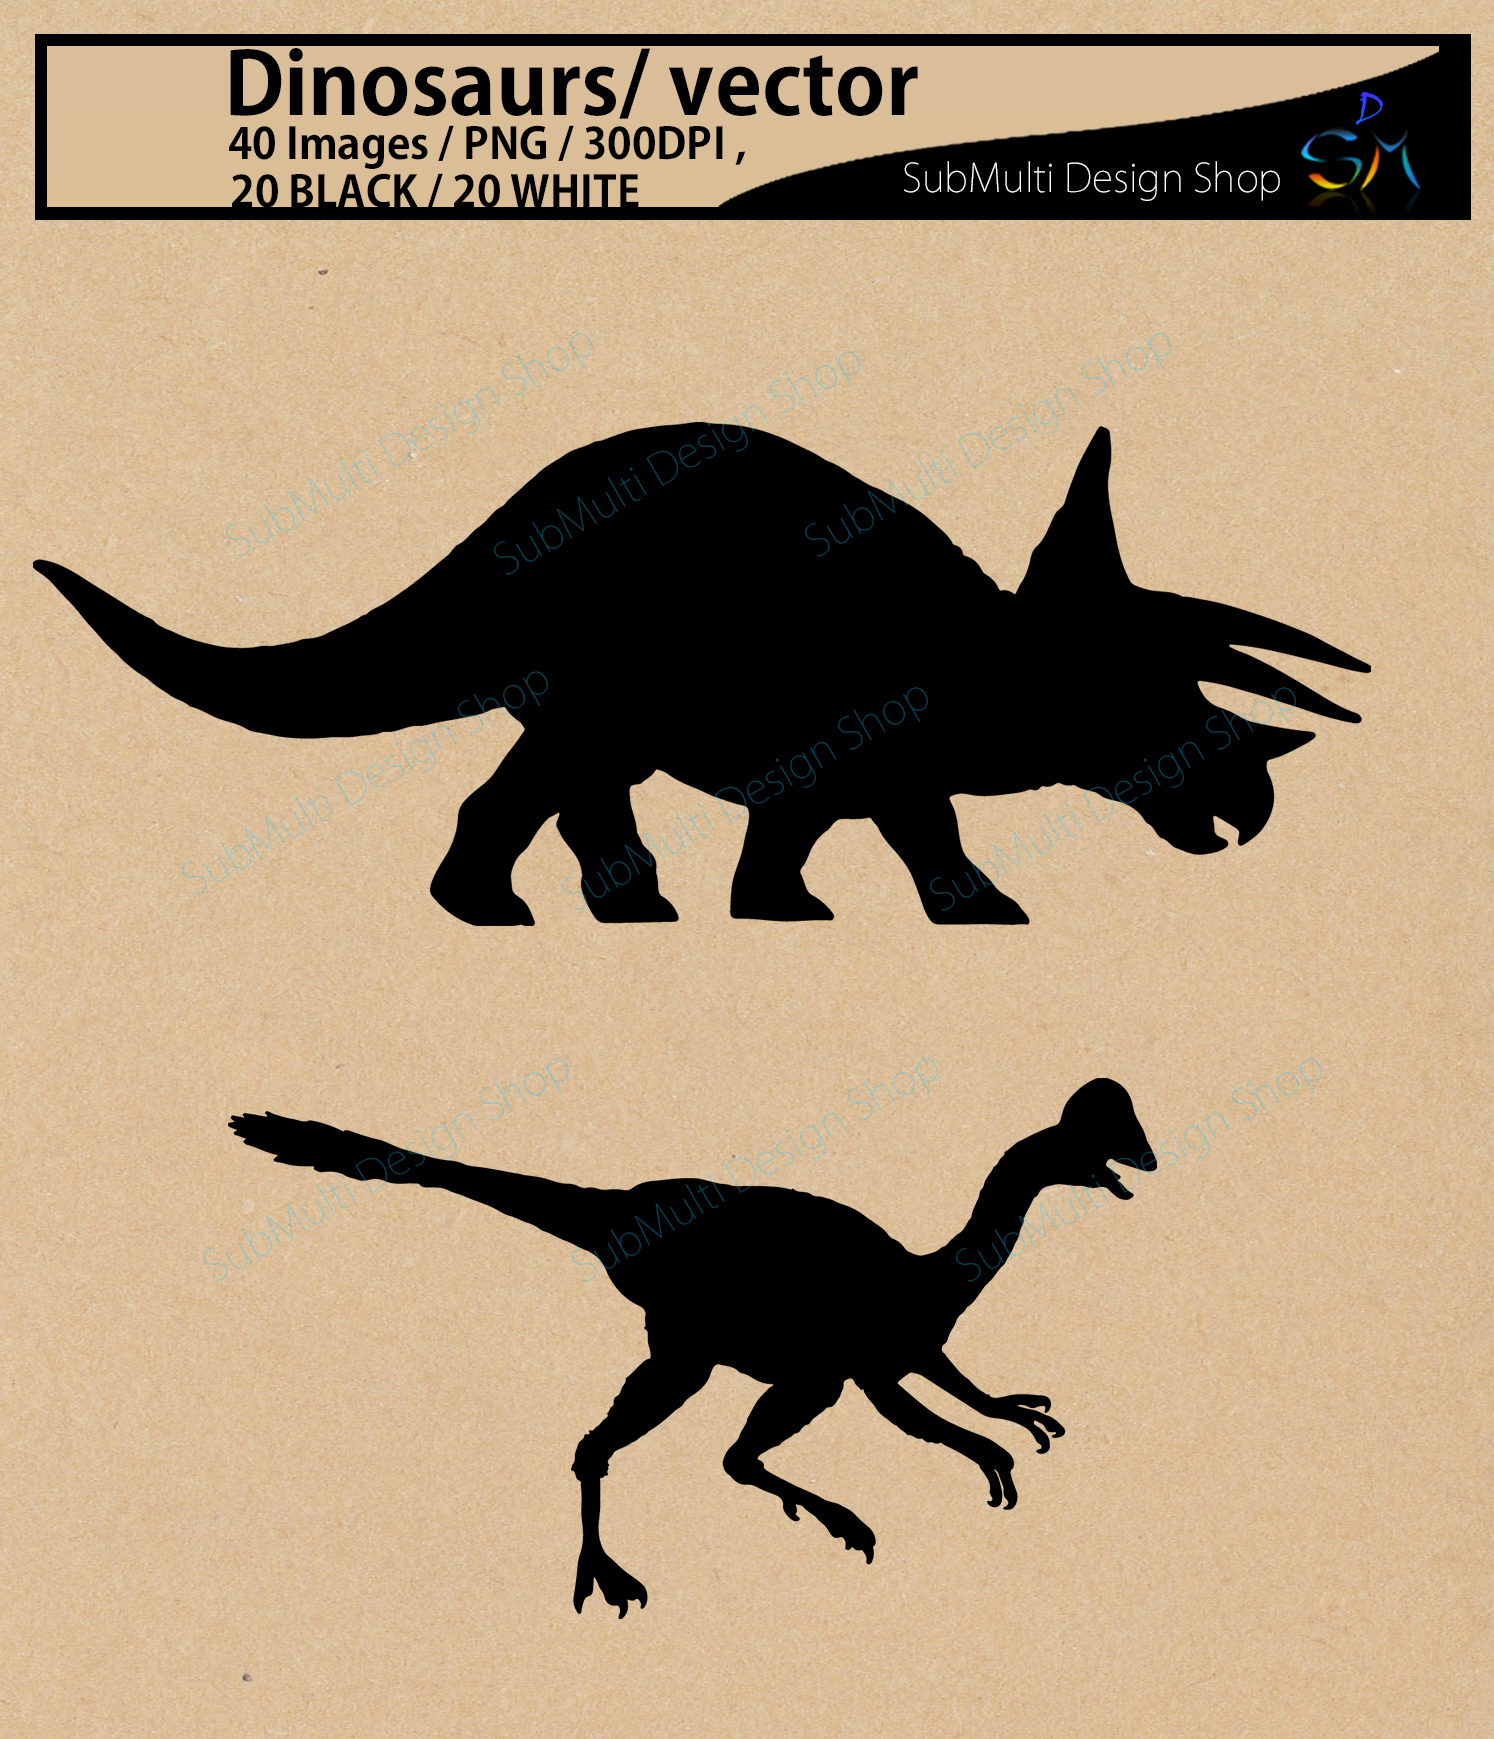 Dinosaurs silhouette svg / dinosaur Clipart, Iron on Transfer, Scrapbooking & Crafts / SVG template / EPS / PNG /animal silhouette / vector example image 2